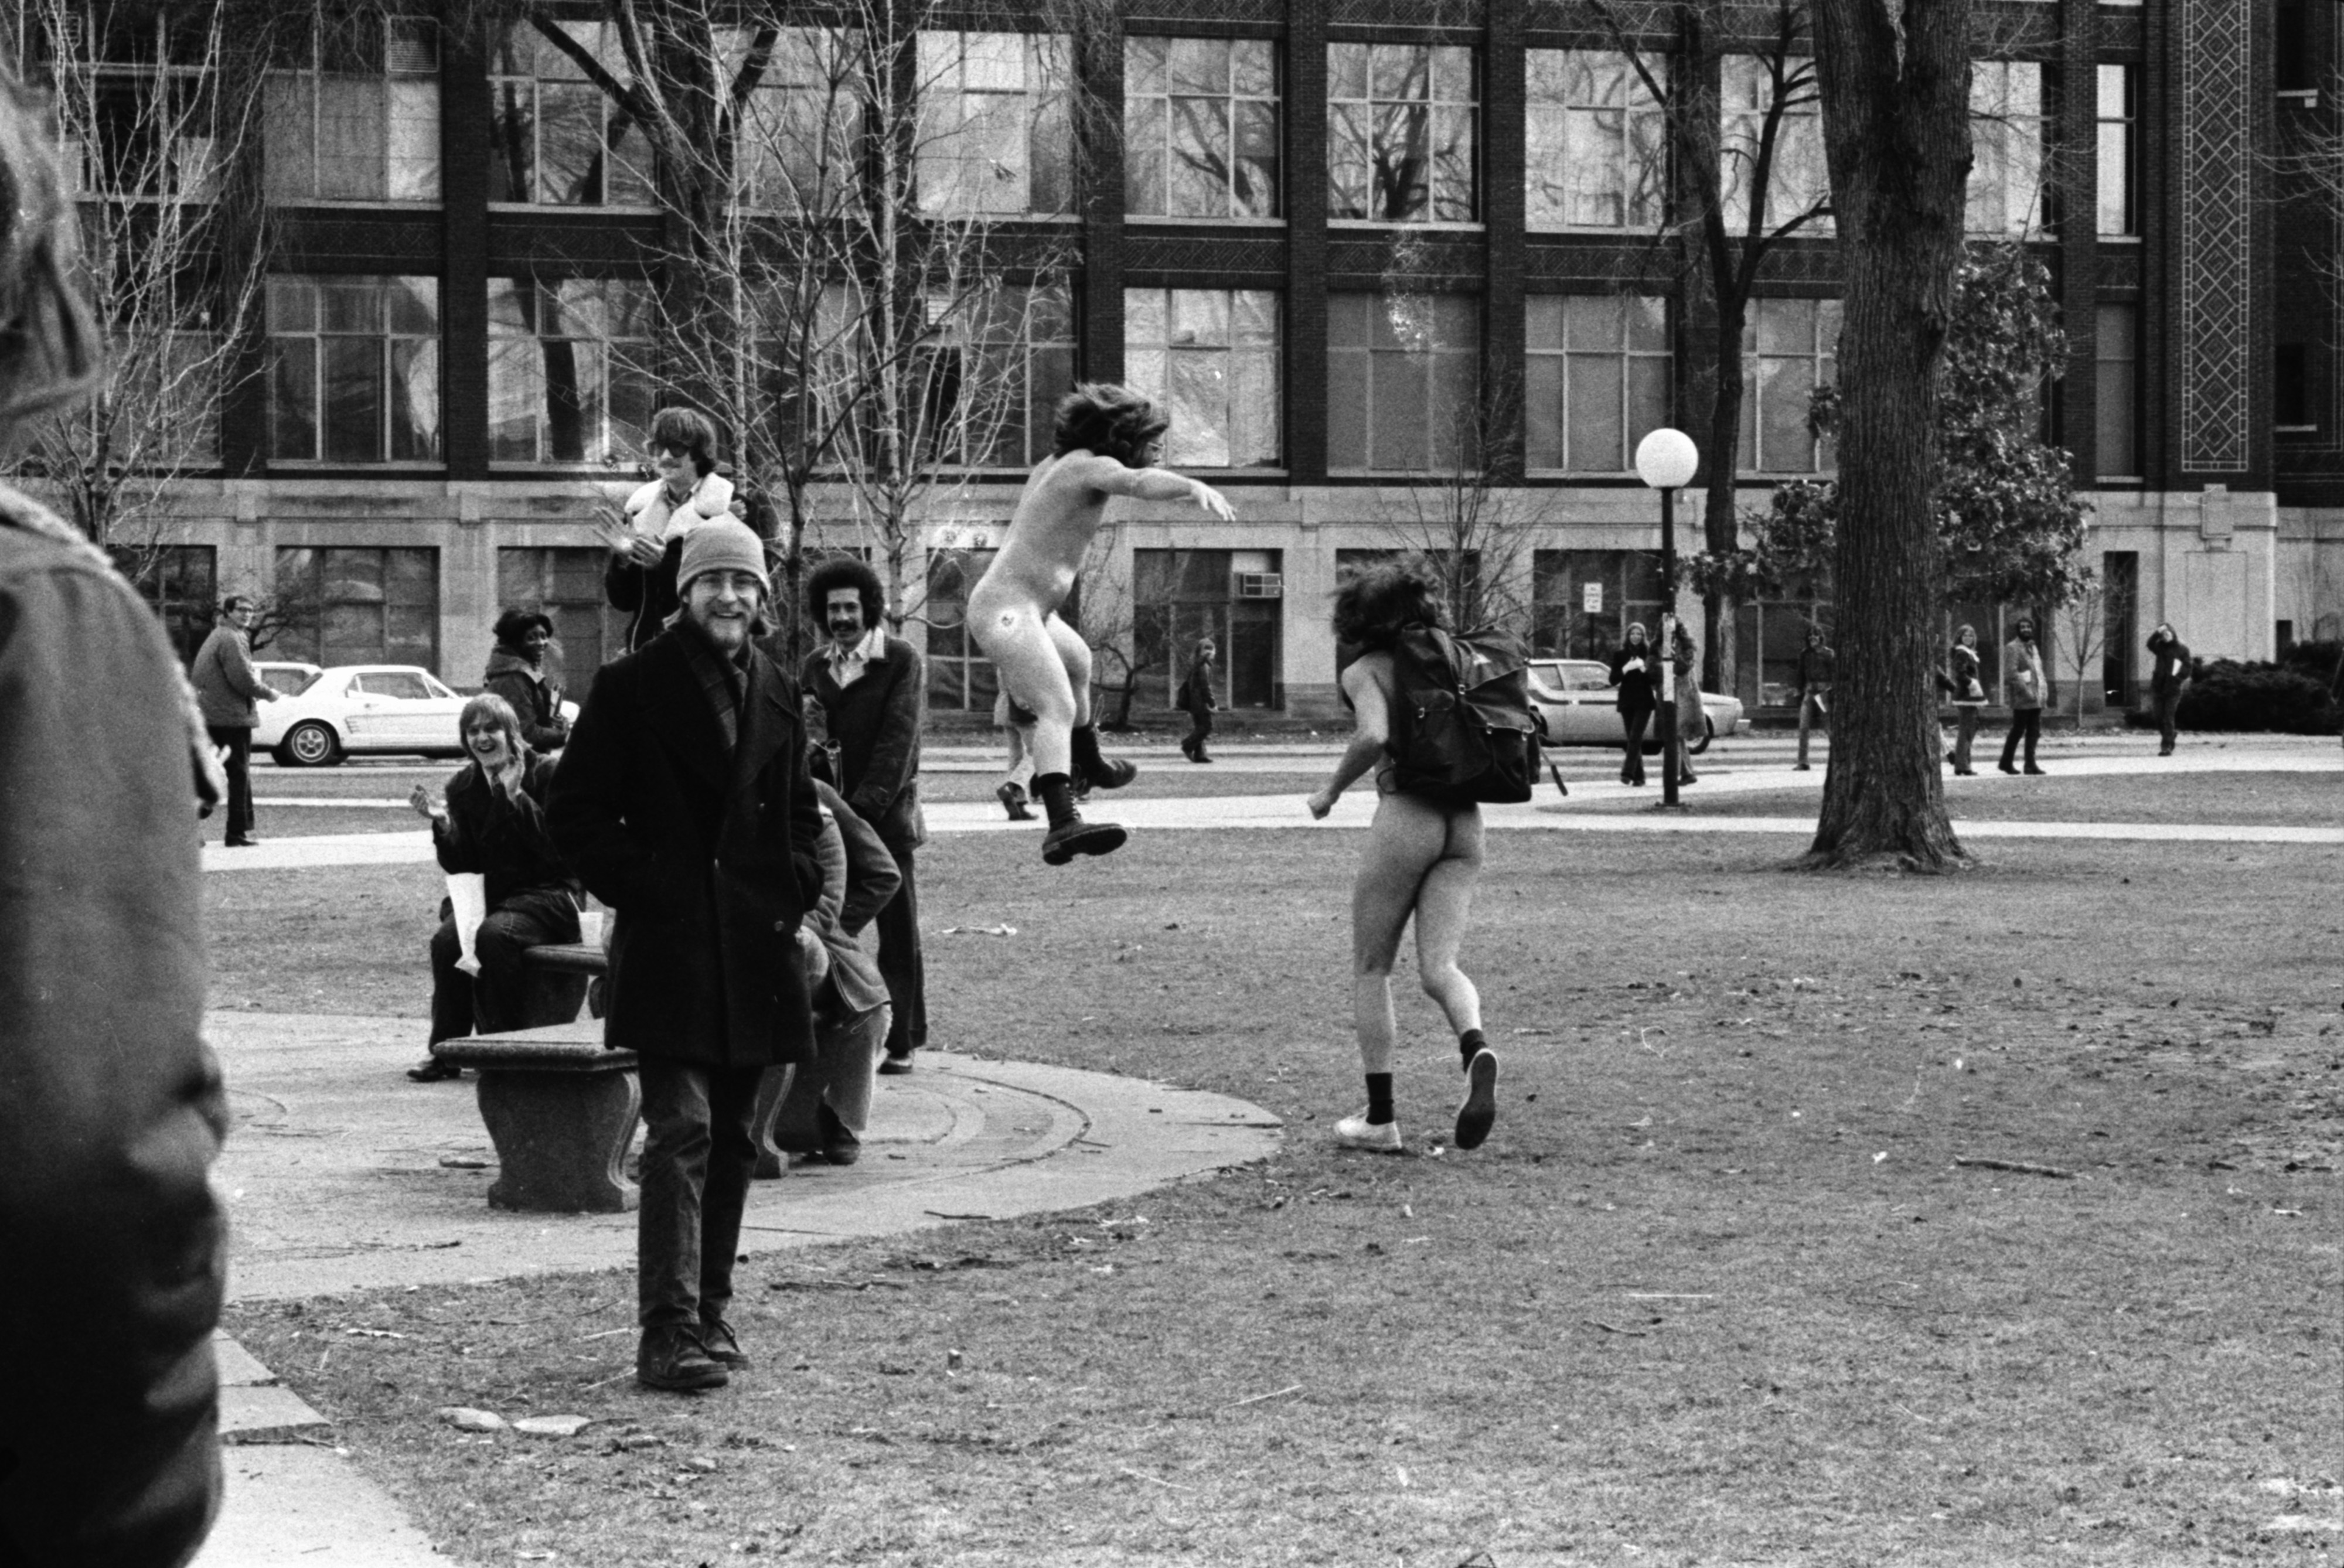 Streakers on the U-M campus, March 1974 image